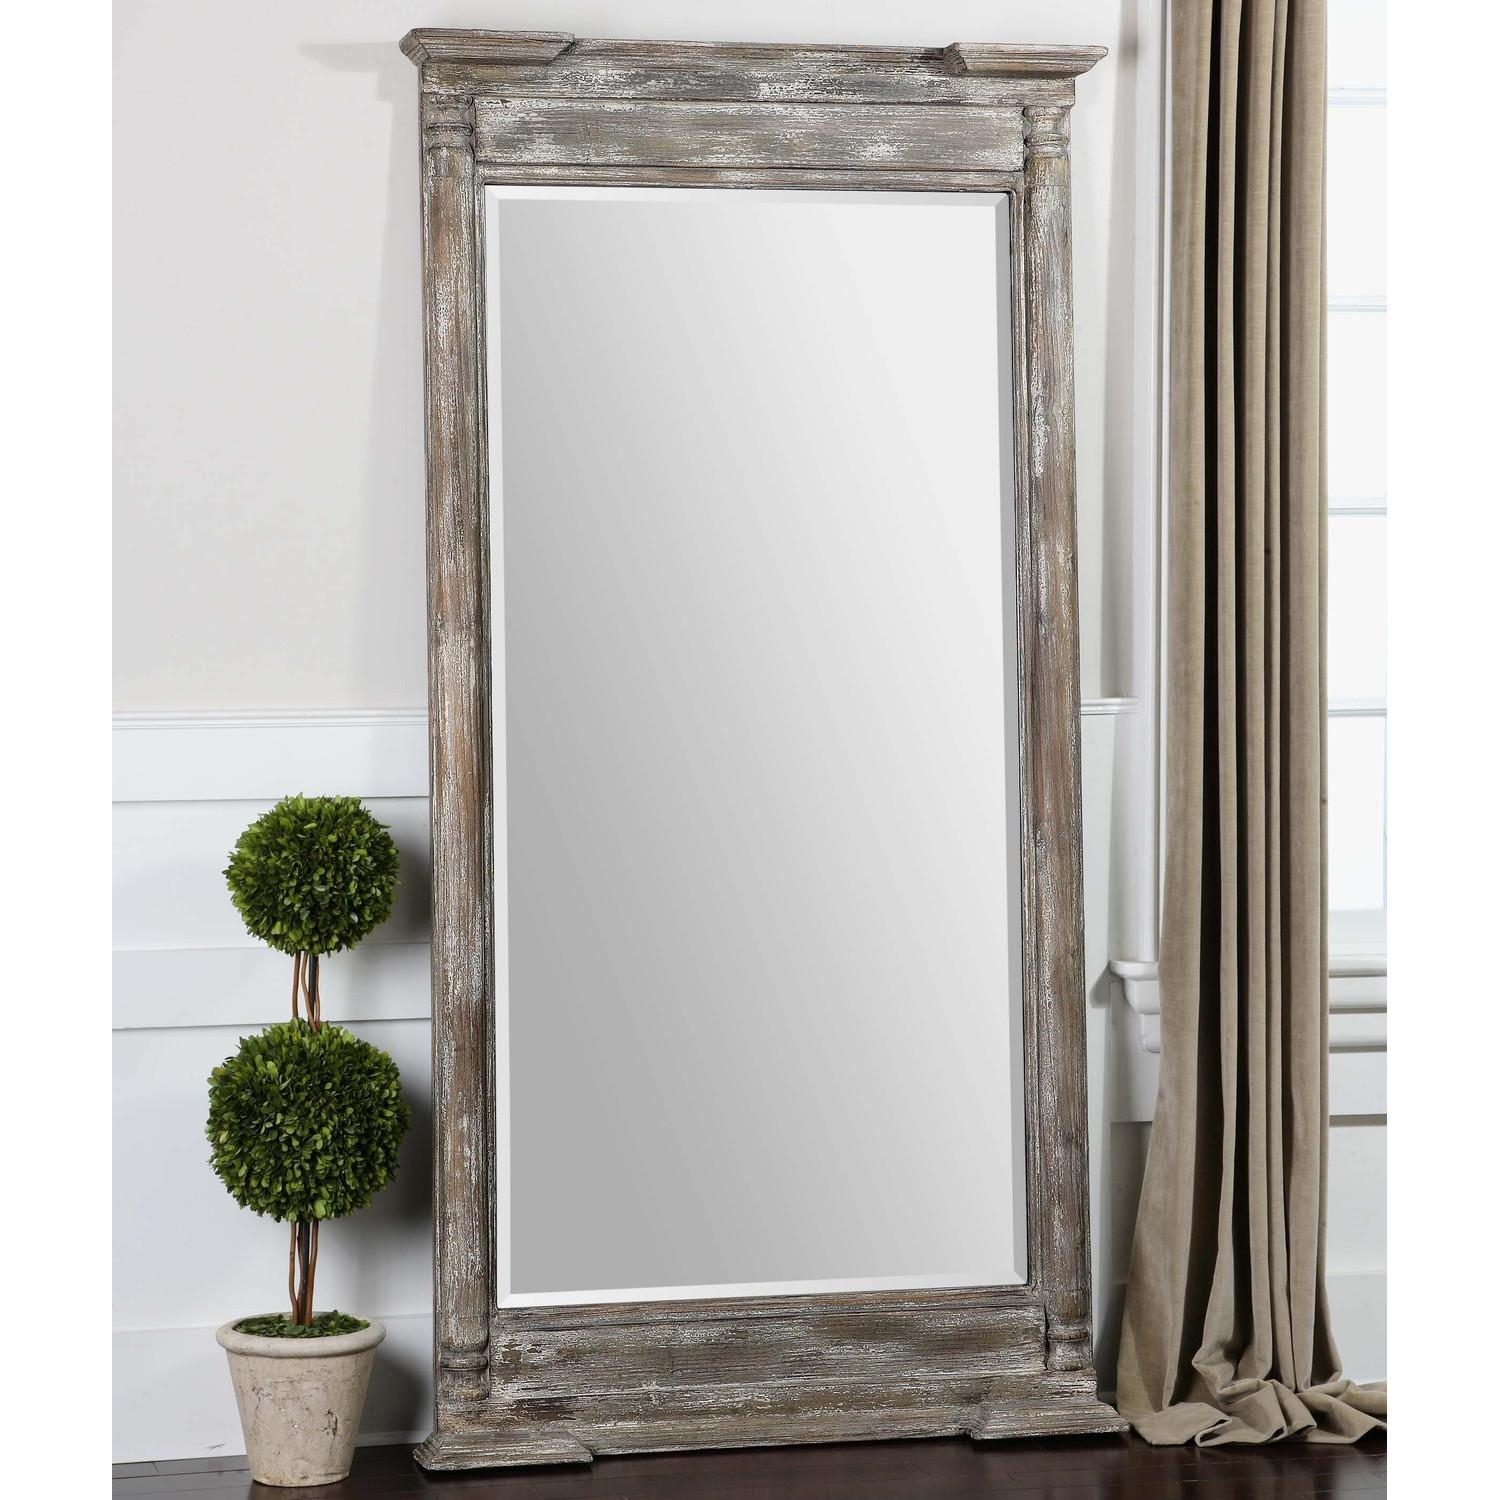 Decor: Leaning Floor Mirror For Interior Accessories Design Ideas Pertaining To Cheap Stand Up Mirrors (View 16 of 20)